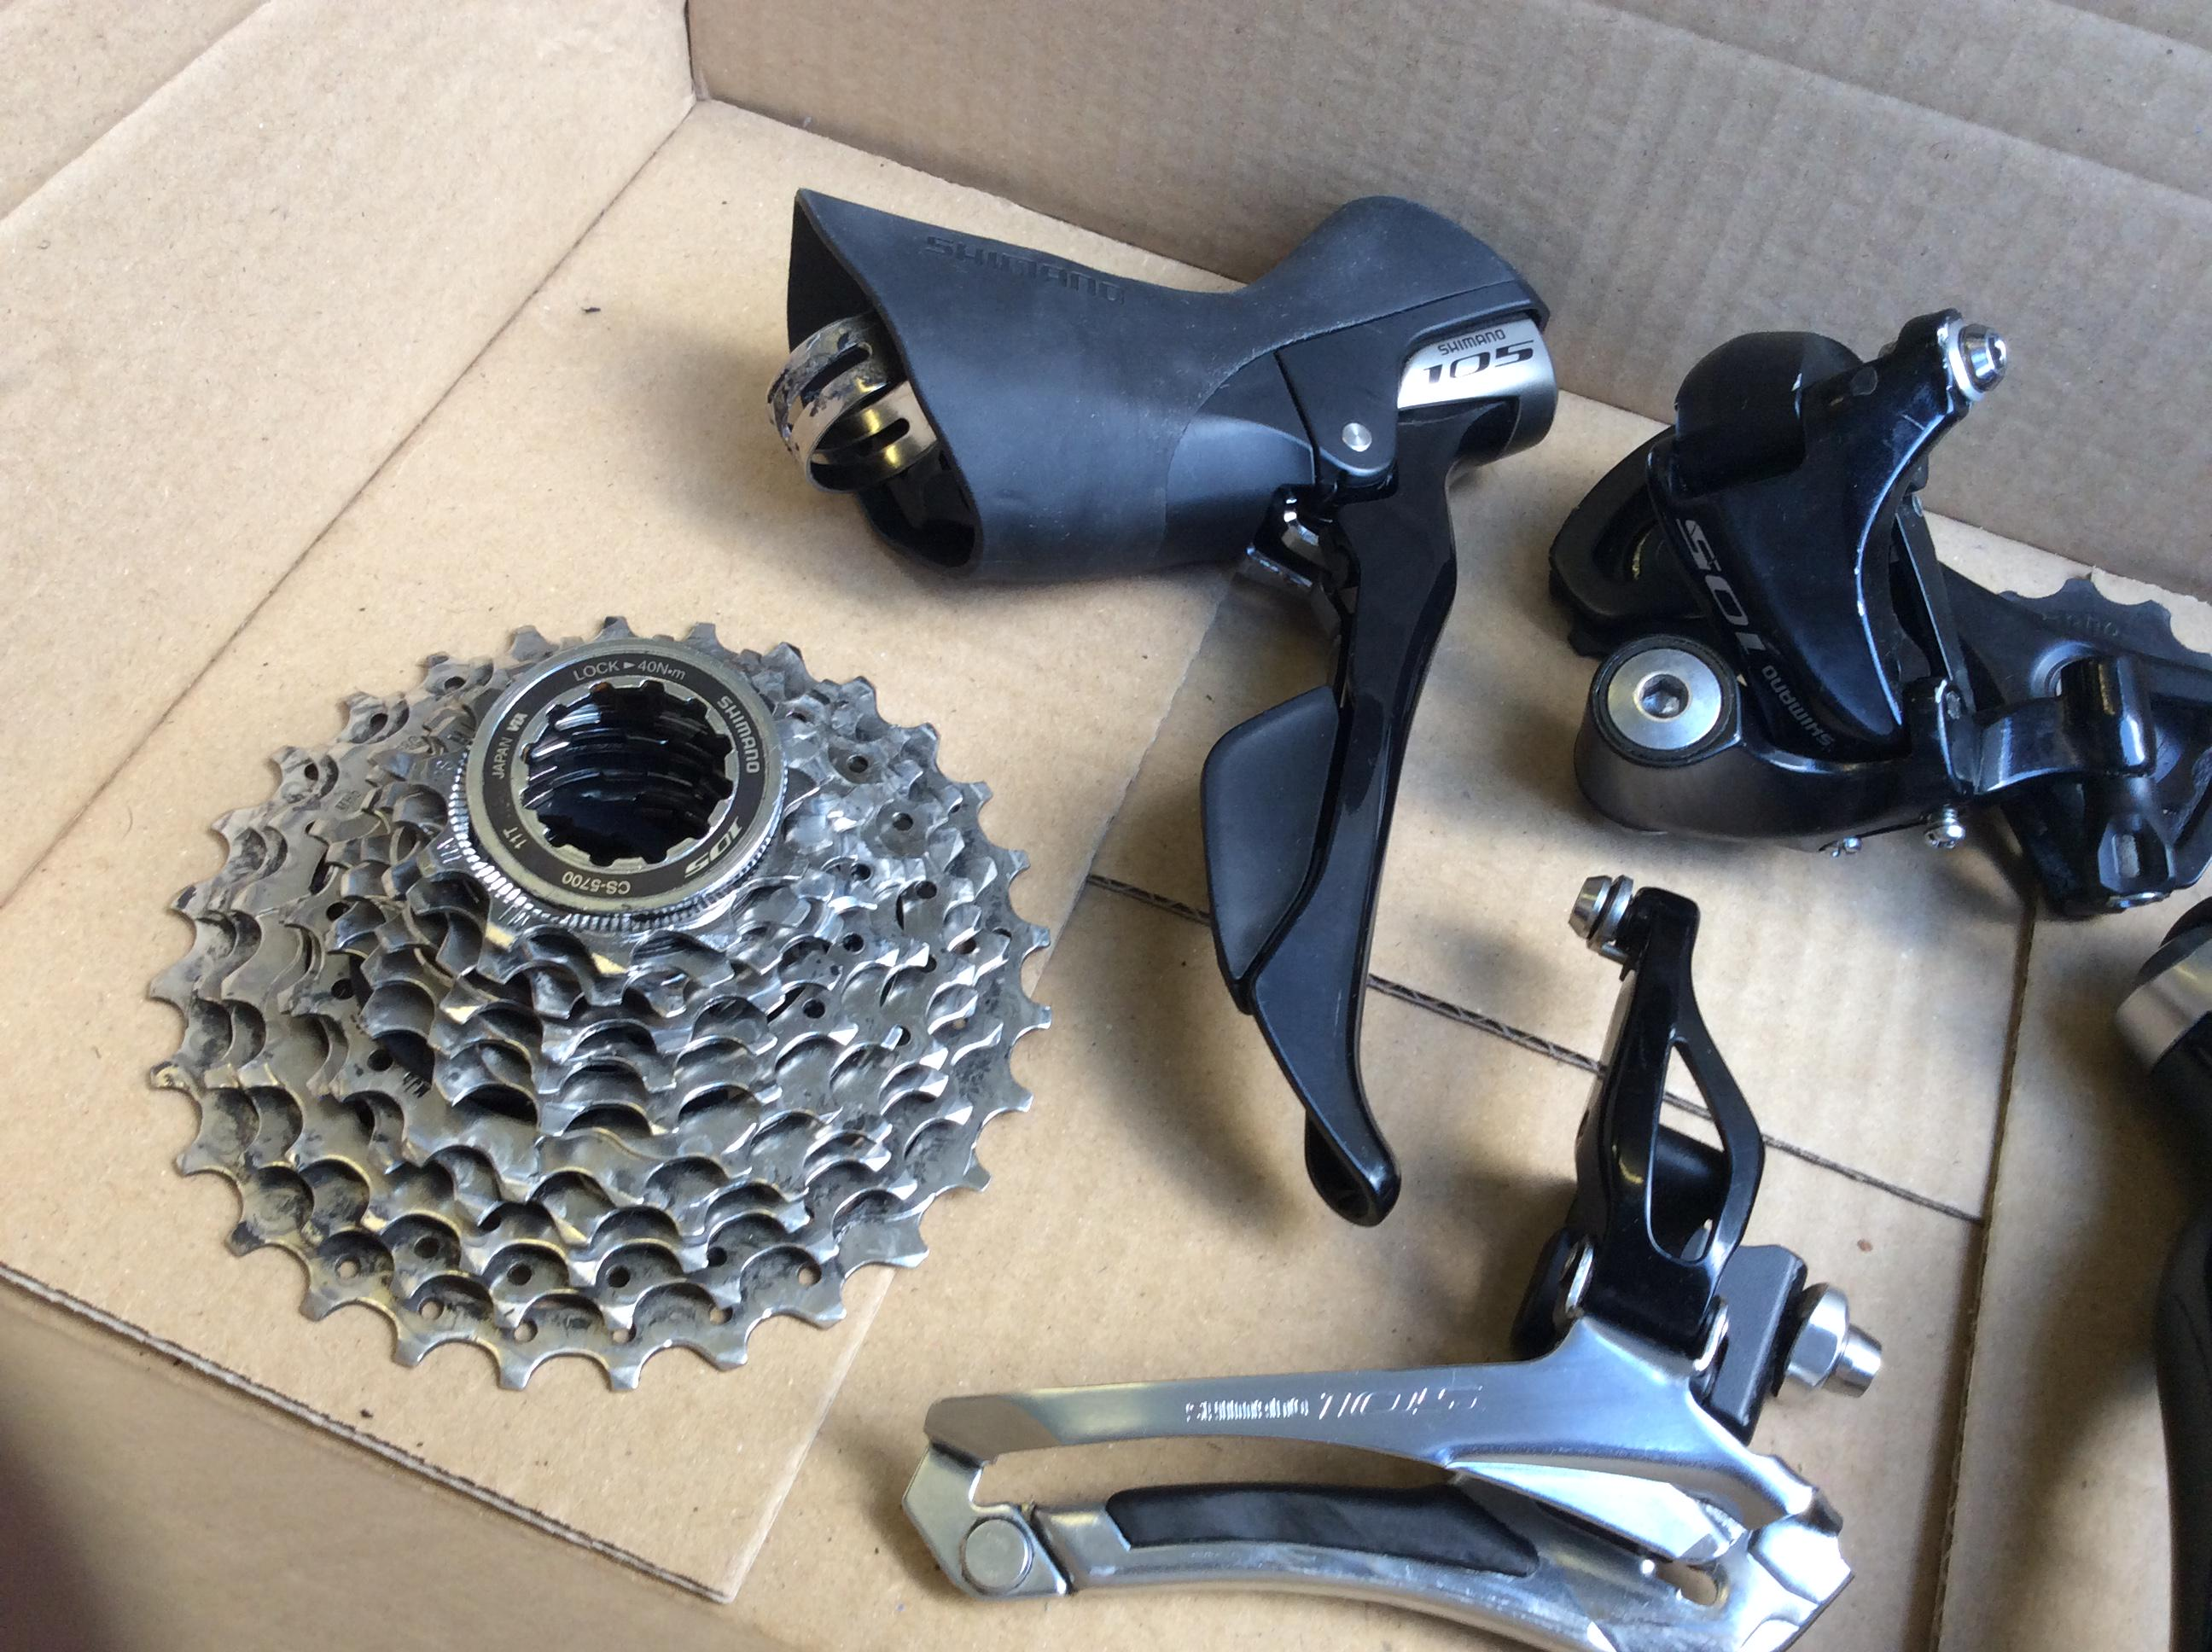 Shimano 105 5800 Groupset Sold Lfgss New In Box 5 Attachments